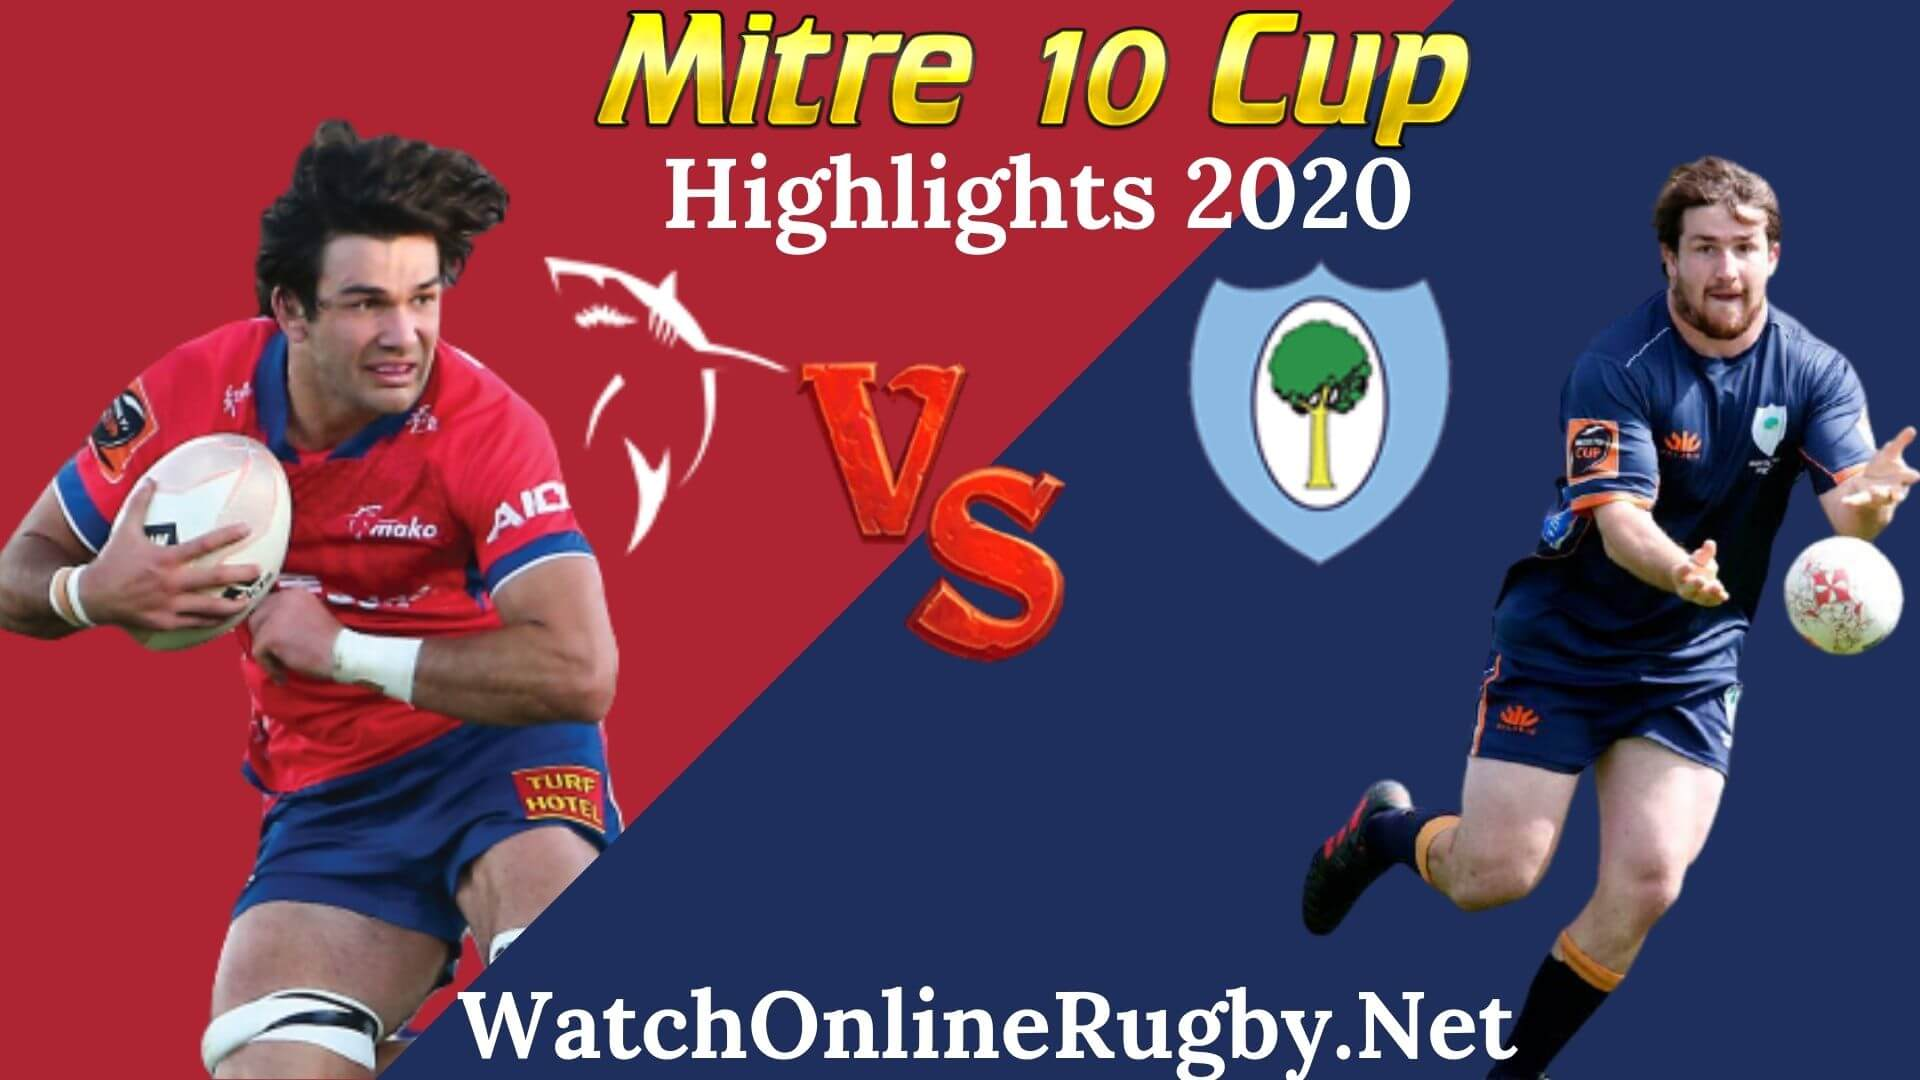 Tasman vs Northland RD 2 Highlights 2020 M10 Cup